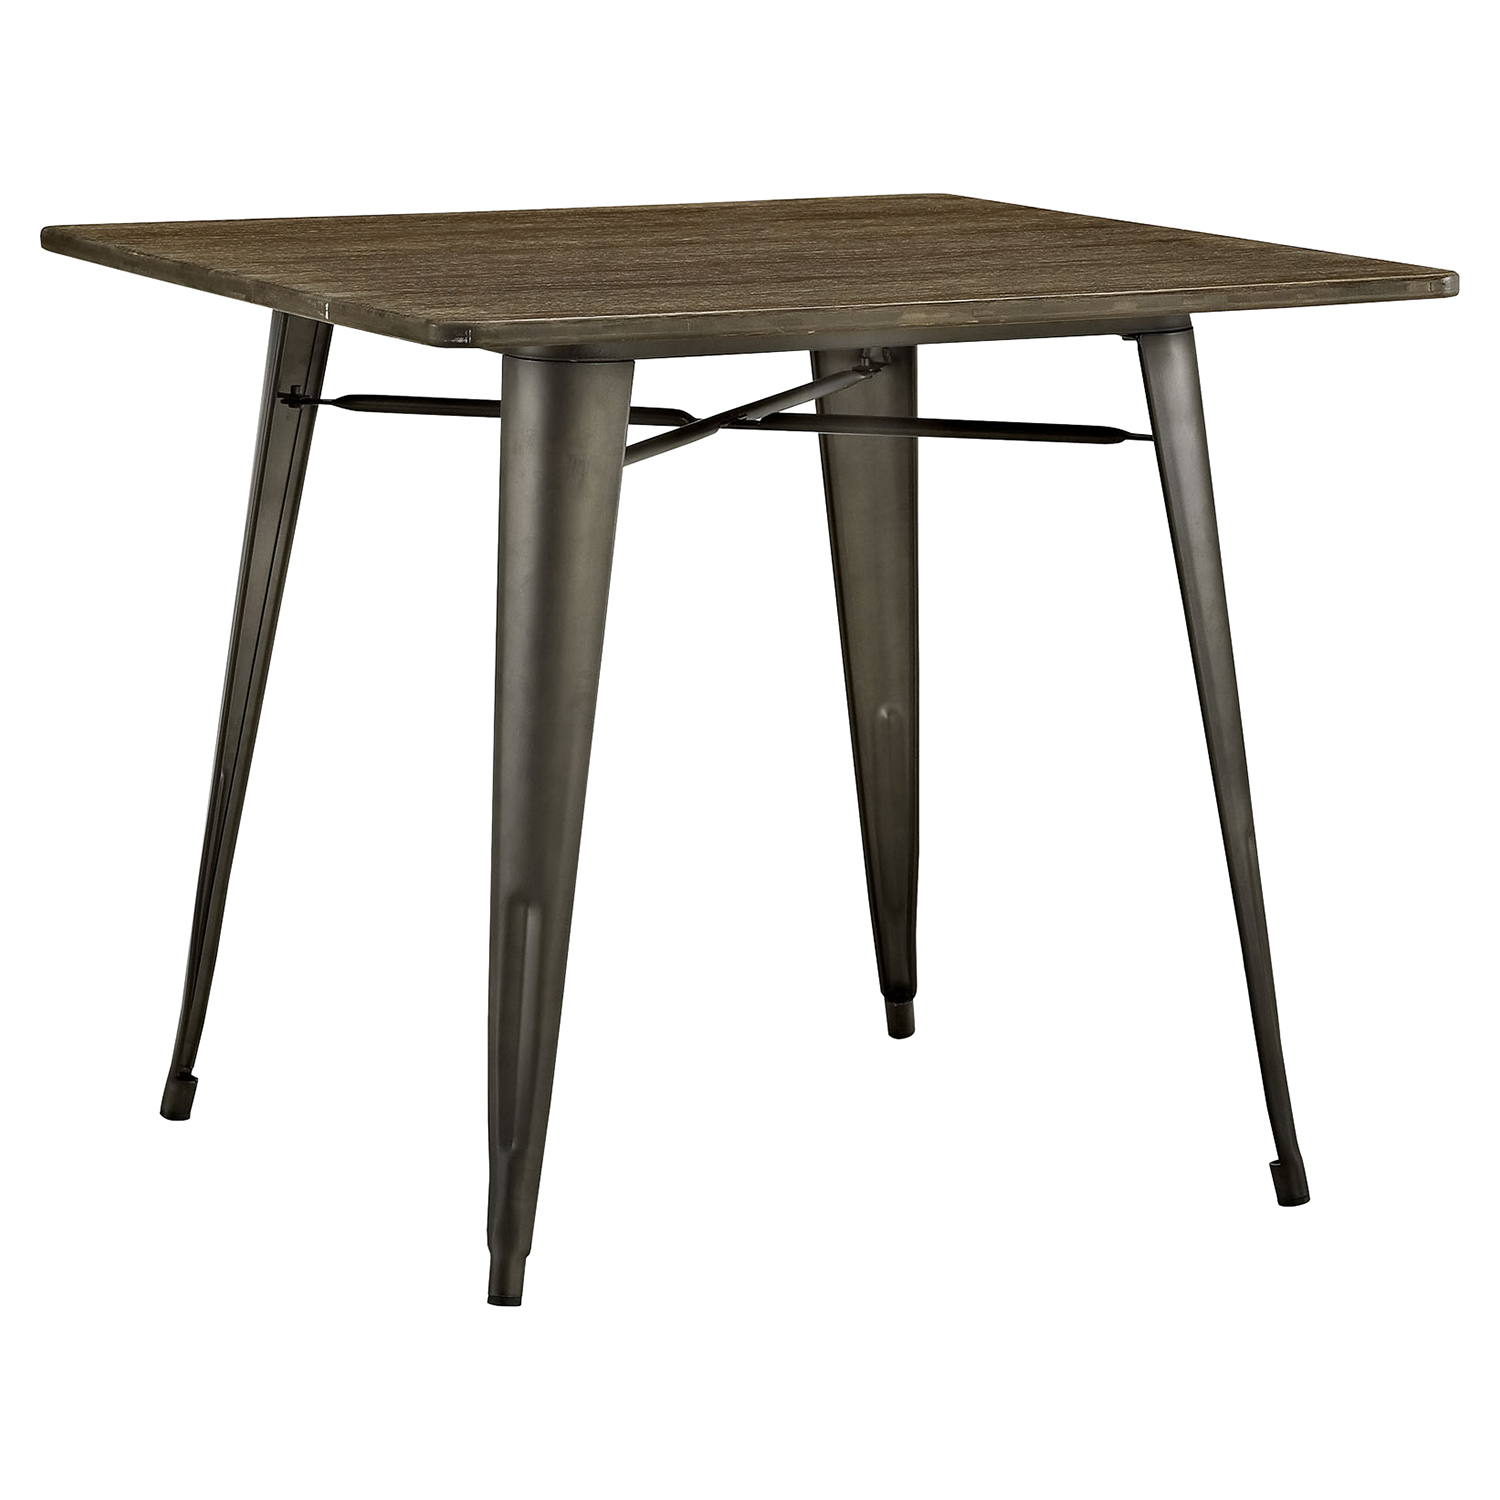 "Alacrity 36"" Square Wood Dining Table - Brown - EEI-2036-BRN"